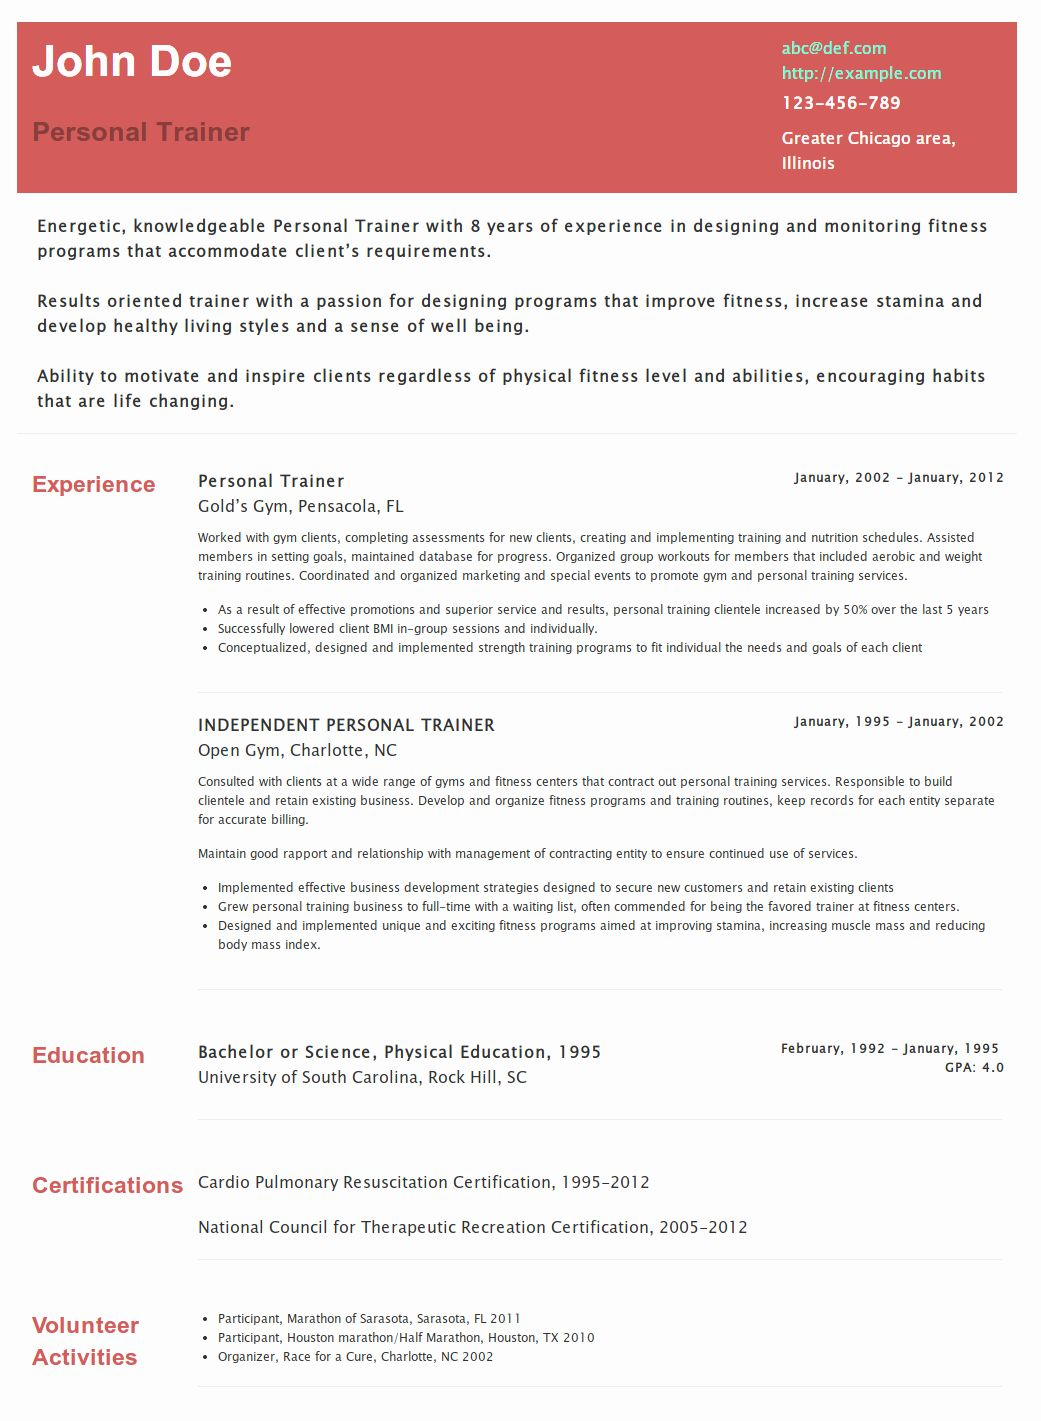 Group Fitness Instructor Resume Lovely Pin By Hipcv On Hipcv Resume Examples Resume Examples Personal Trainer Group Fitness Instructor